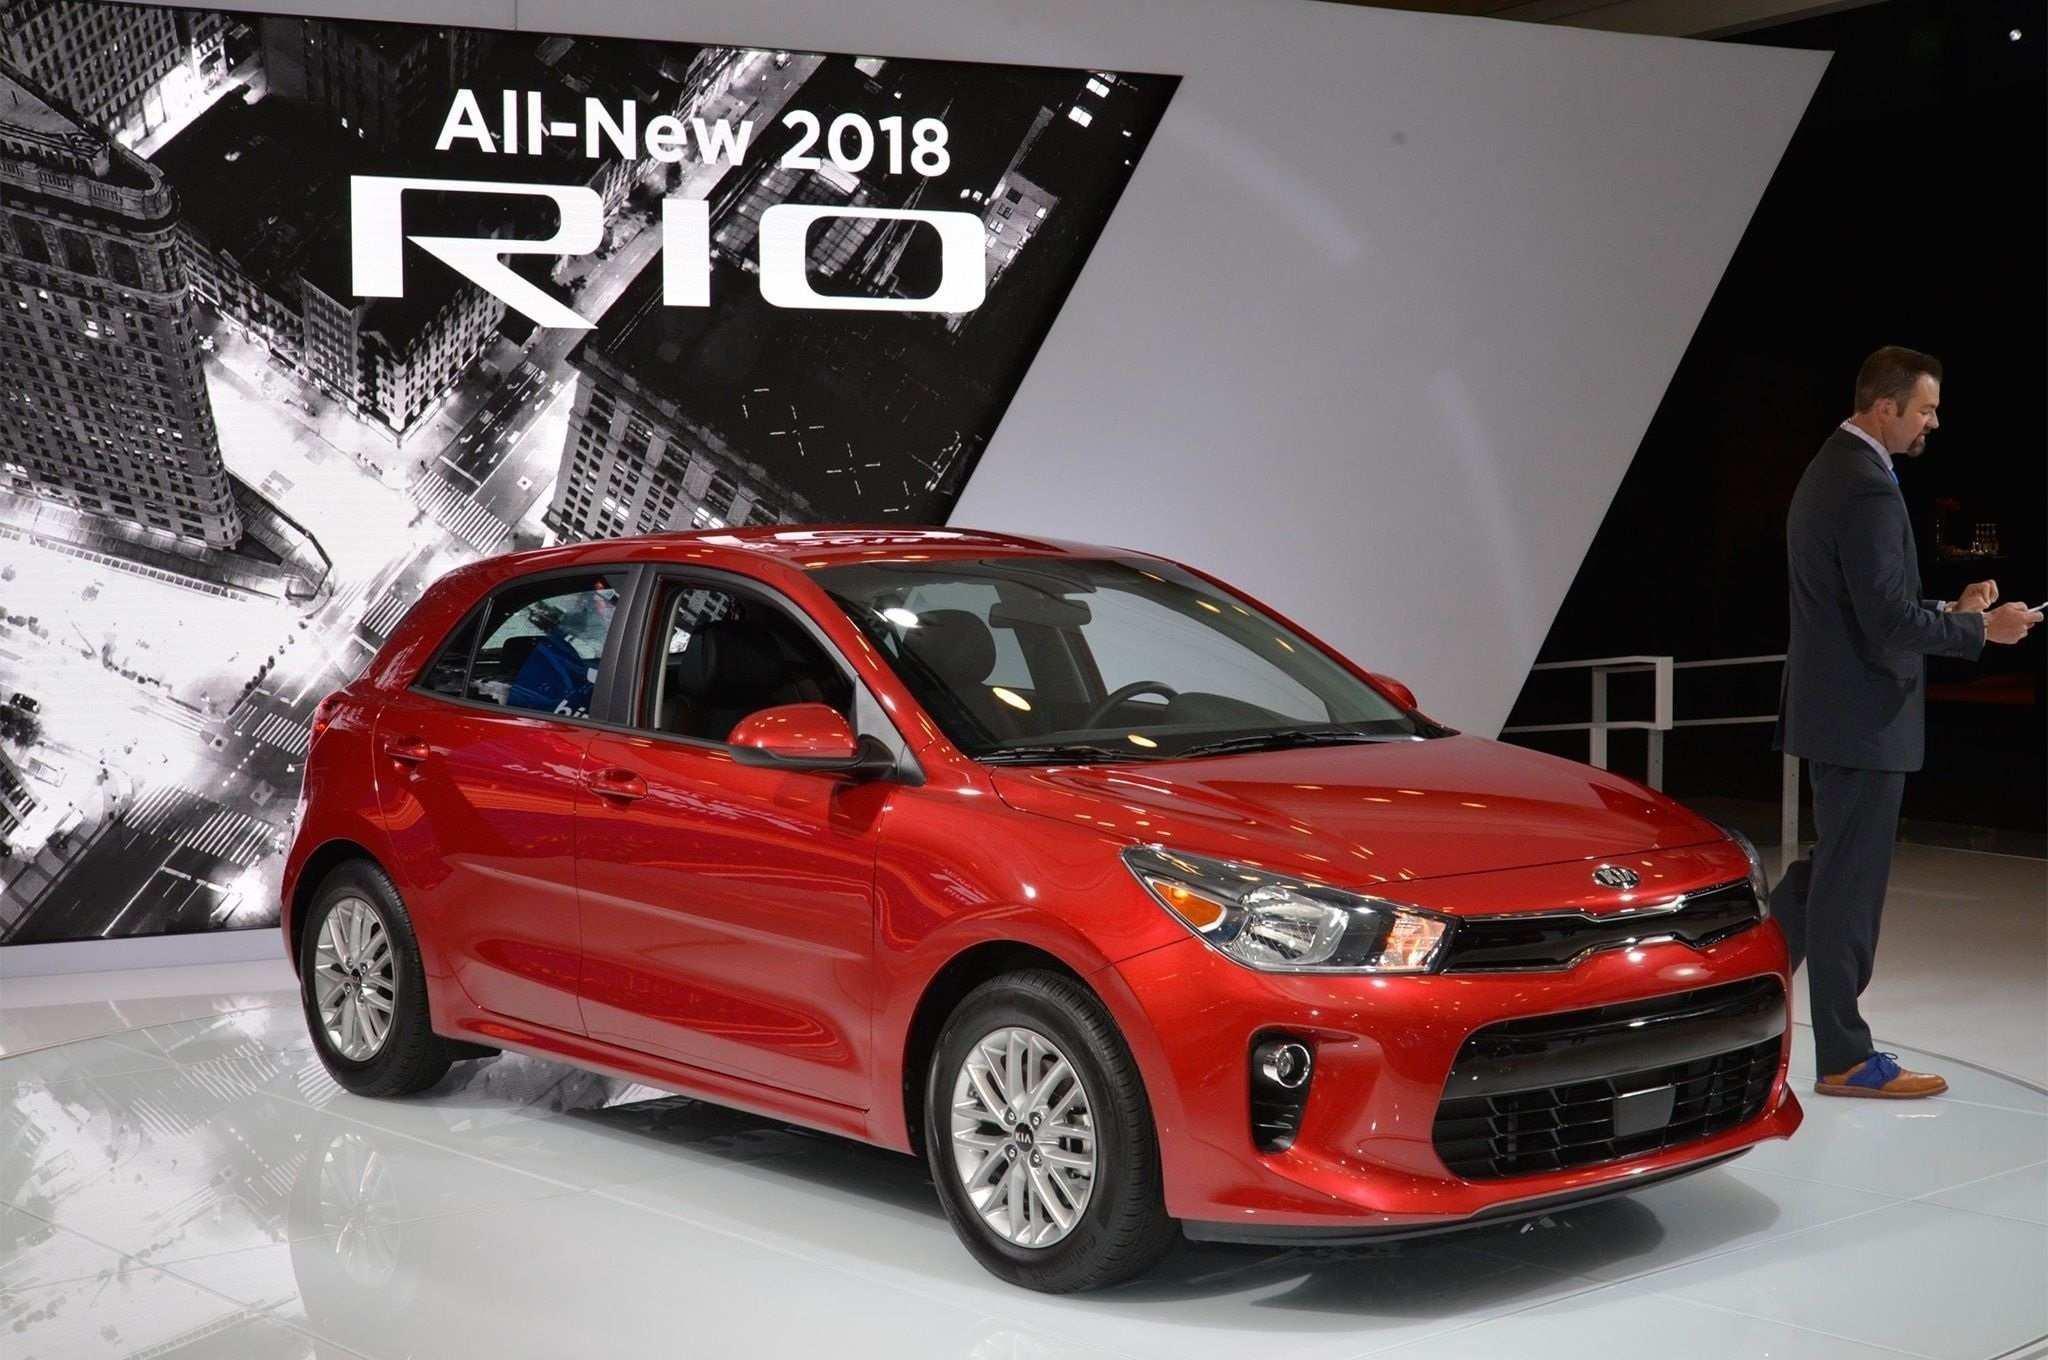 39 New 2019 All Kia Rio Interior